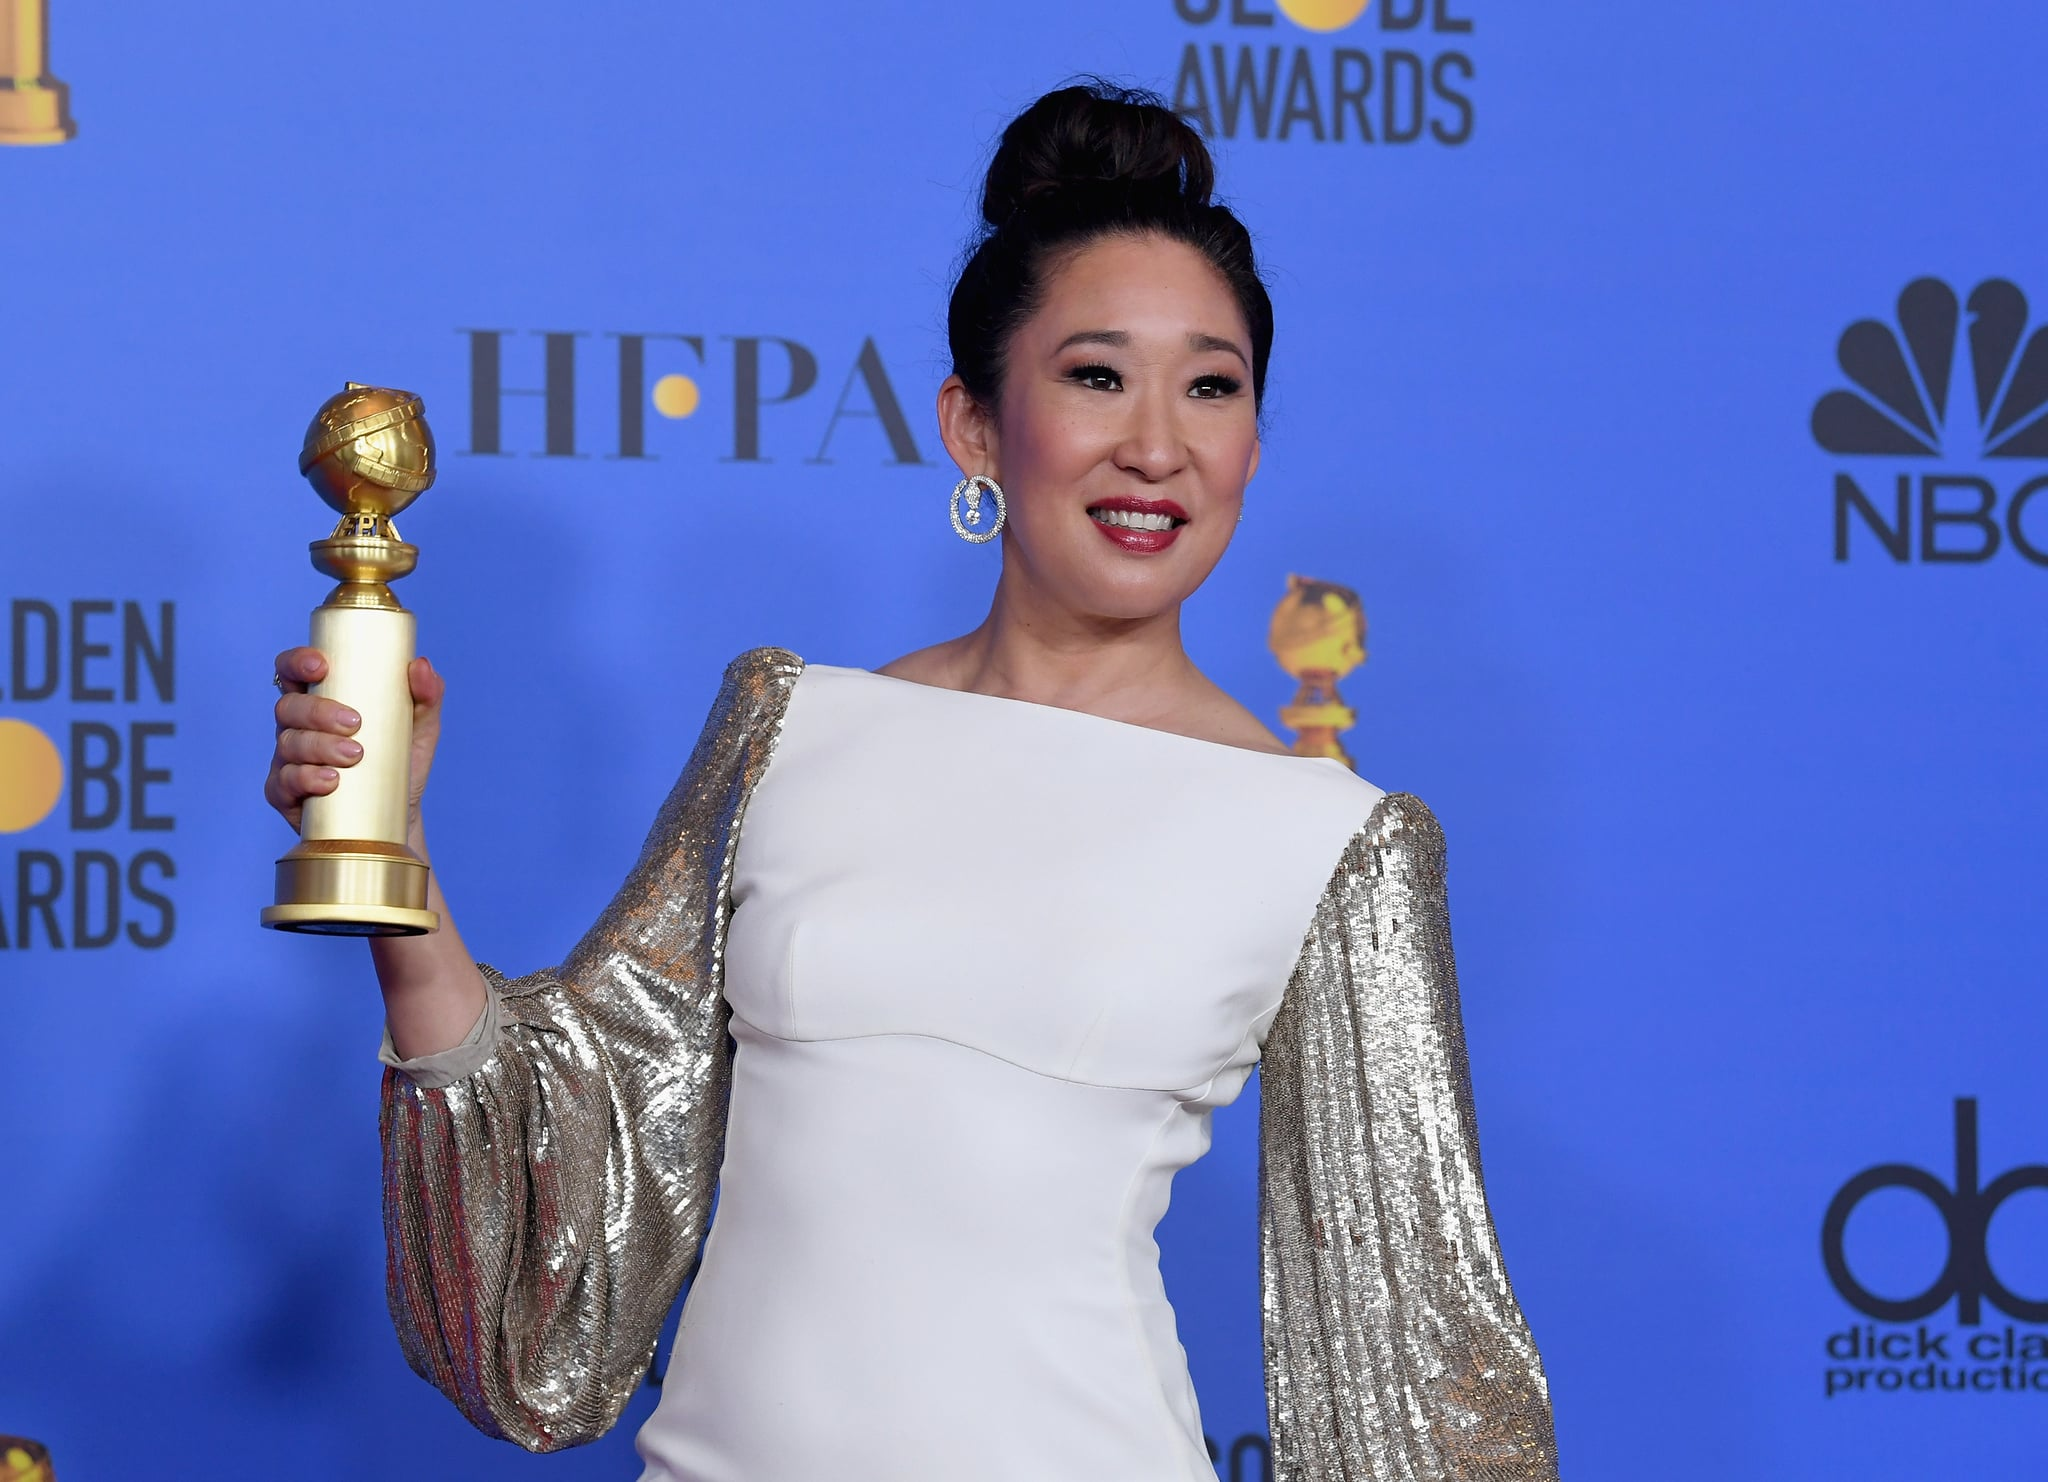 BEVERLY HILLS, CA - JANUARY 06:  Host and Best Performance by an Actress in a Television Series Drama 'for Killing Eve' winner Sandra Oh poses in the press room during the 76th Annual Golden Globe Awards at The Beverly Hilton Hotel on January 6, 2019 in Beverly Hills, California.  (Photo by Kevin Winter/Getty Images)